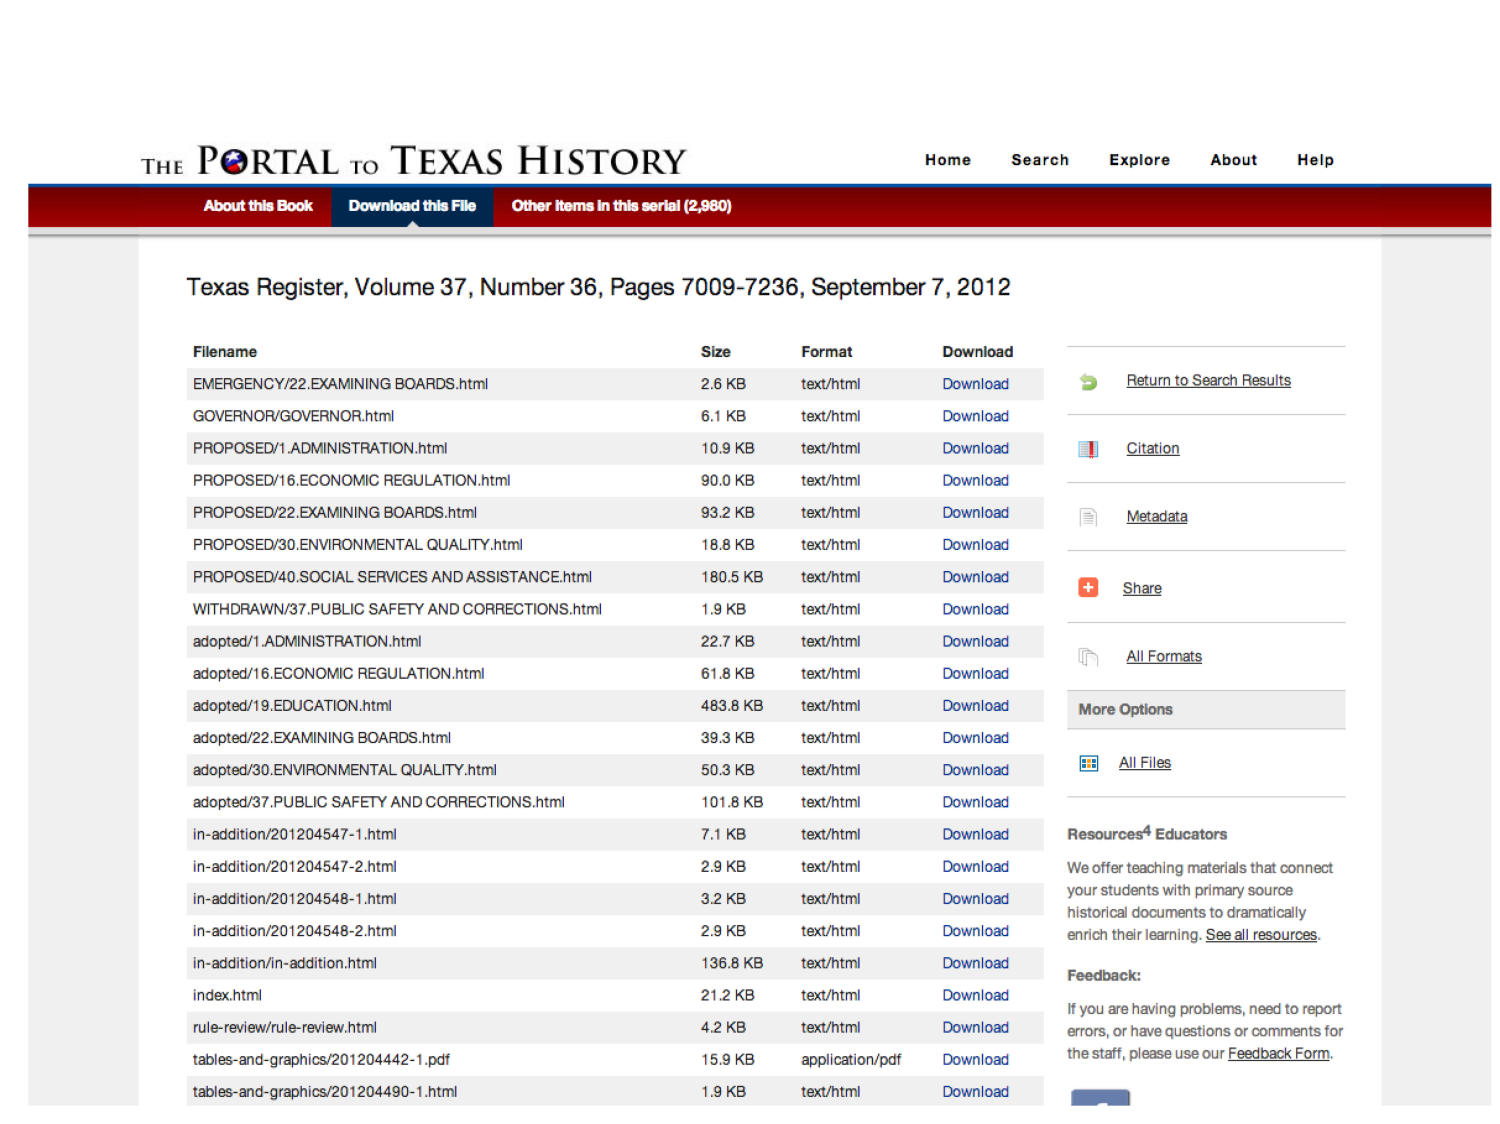 The Portal to Texas History: Technology Overview                                                                                                      [Sequence #]: 21 of 73